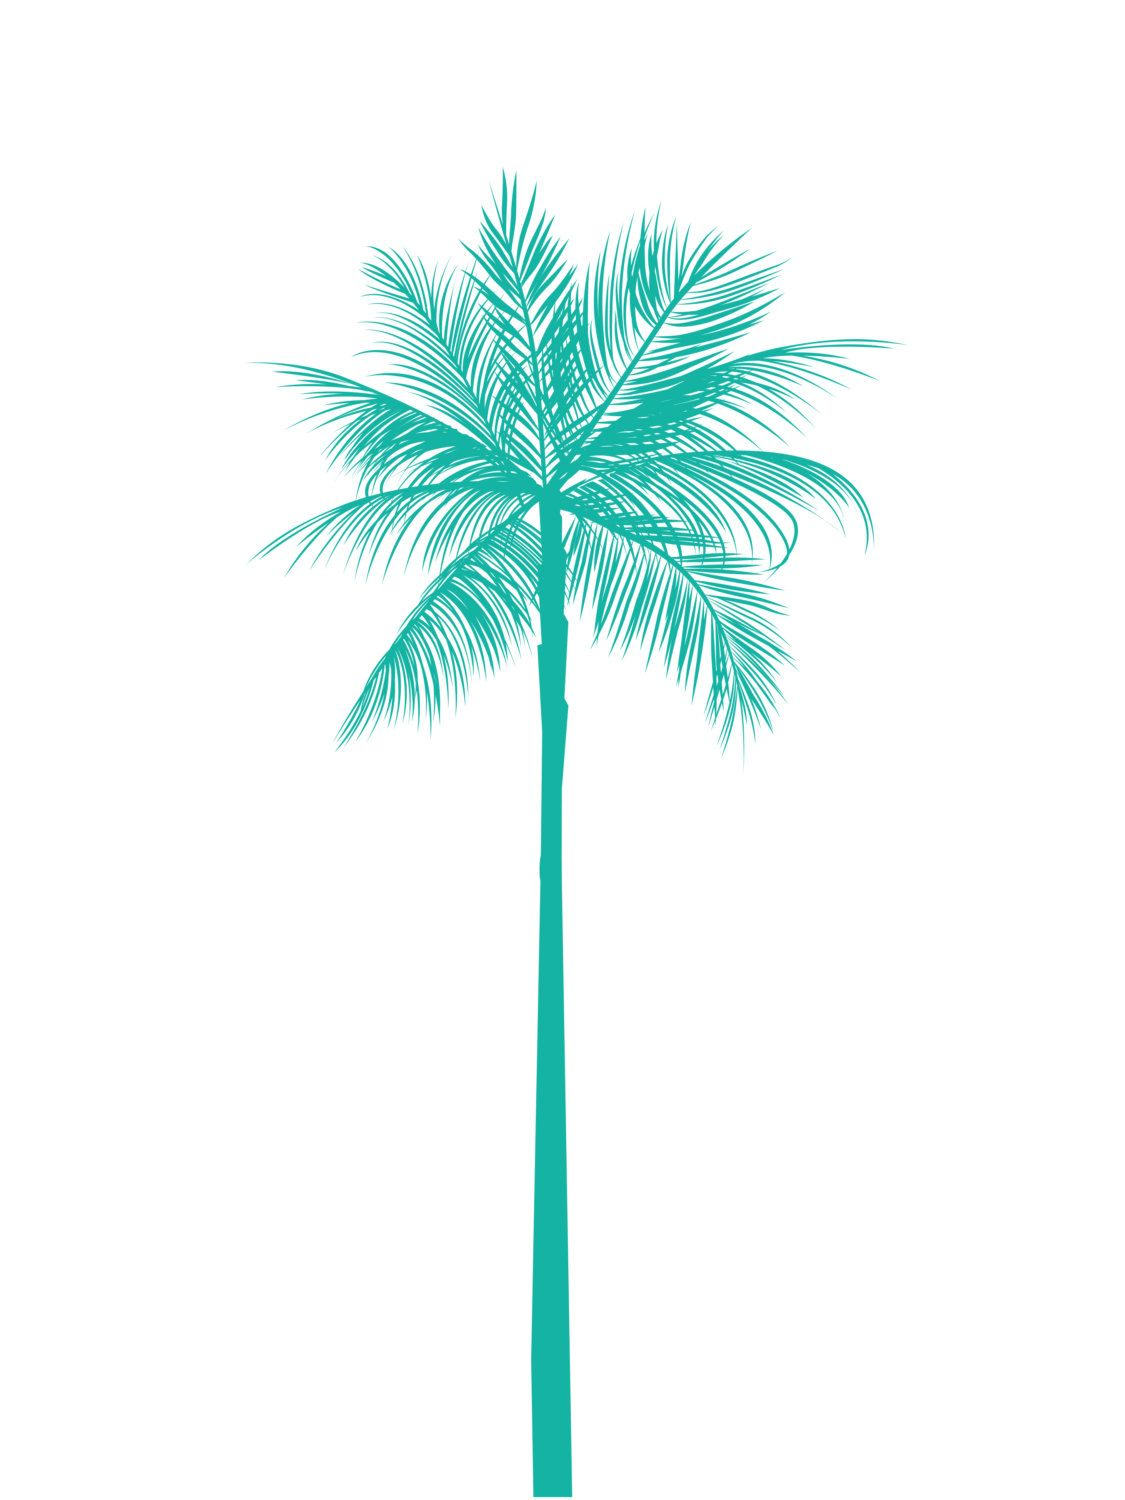 4aef22ef7 Turquoise Palm Tree Print Teal Palm Tree by MelindaWoodDesigns Future  Tattoos, New Tattoos, Cool